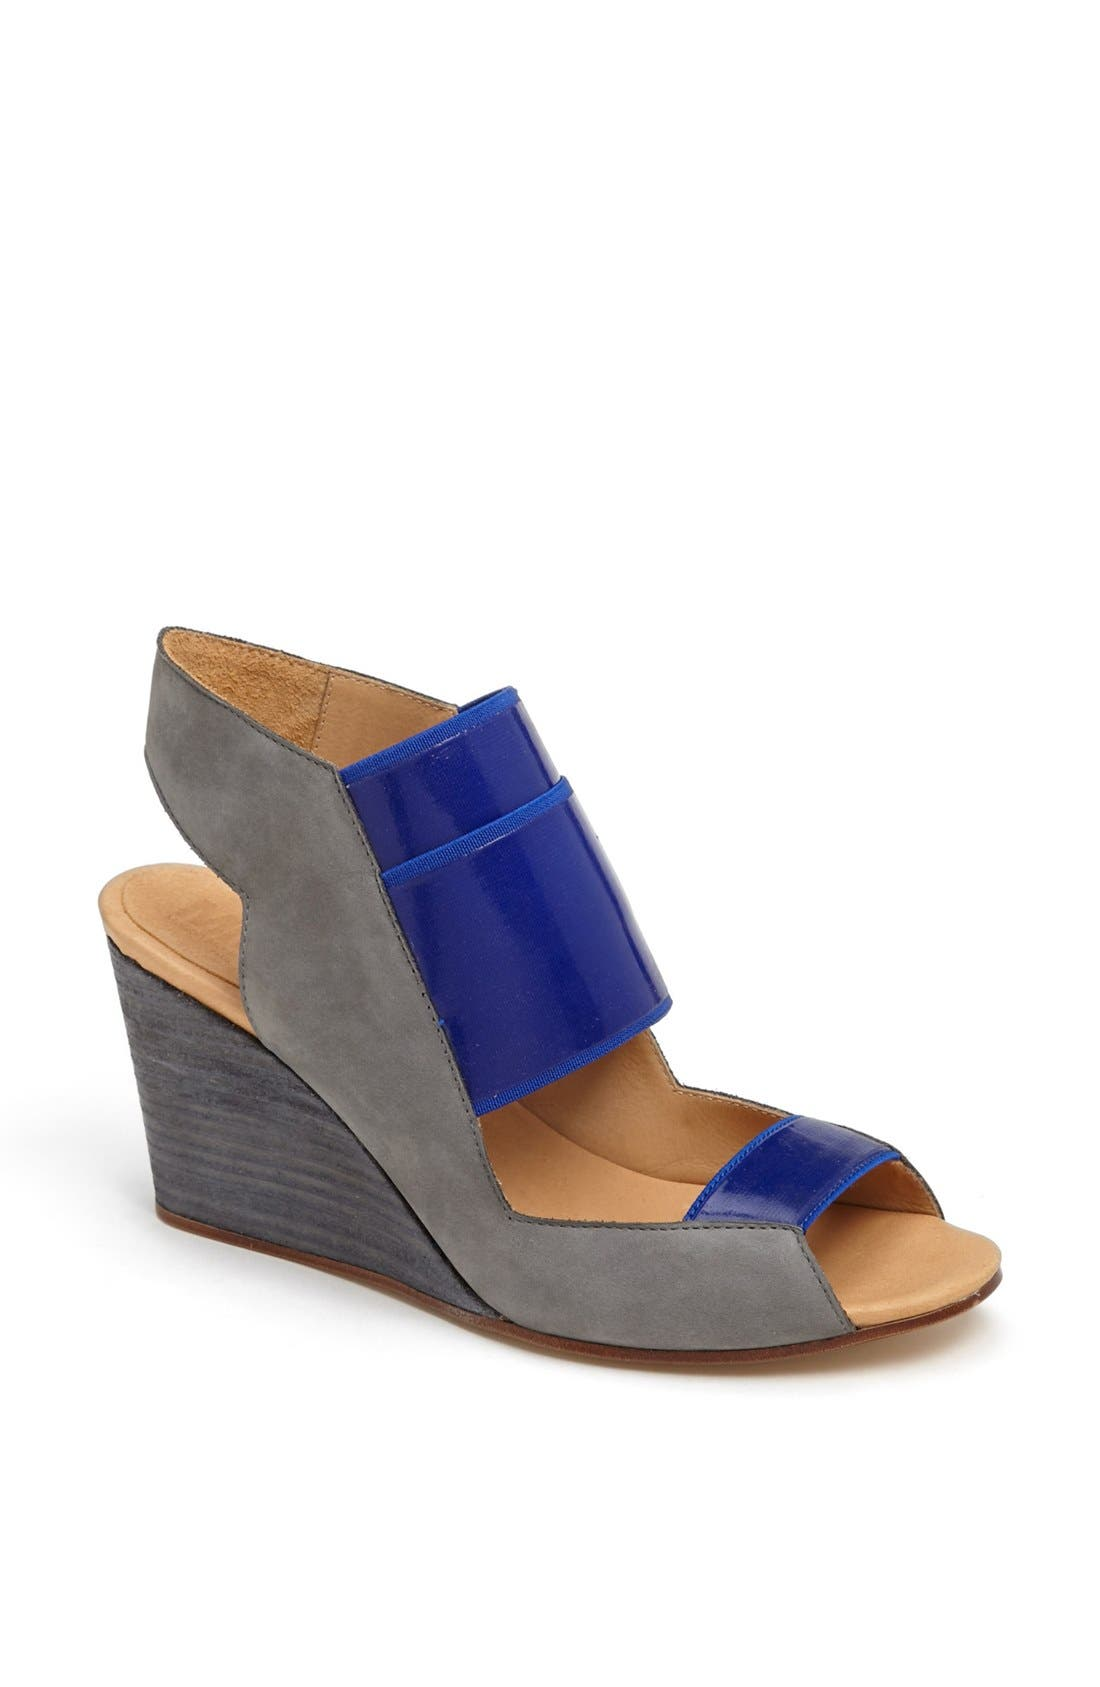 Alternate Image 1 Selected - MM6 Maison Margiela Wedge Sandal